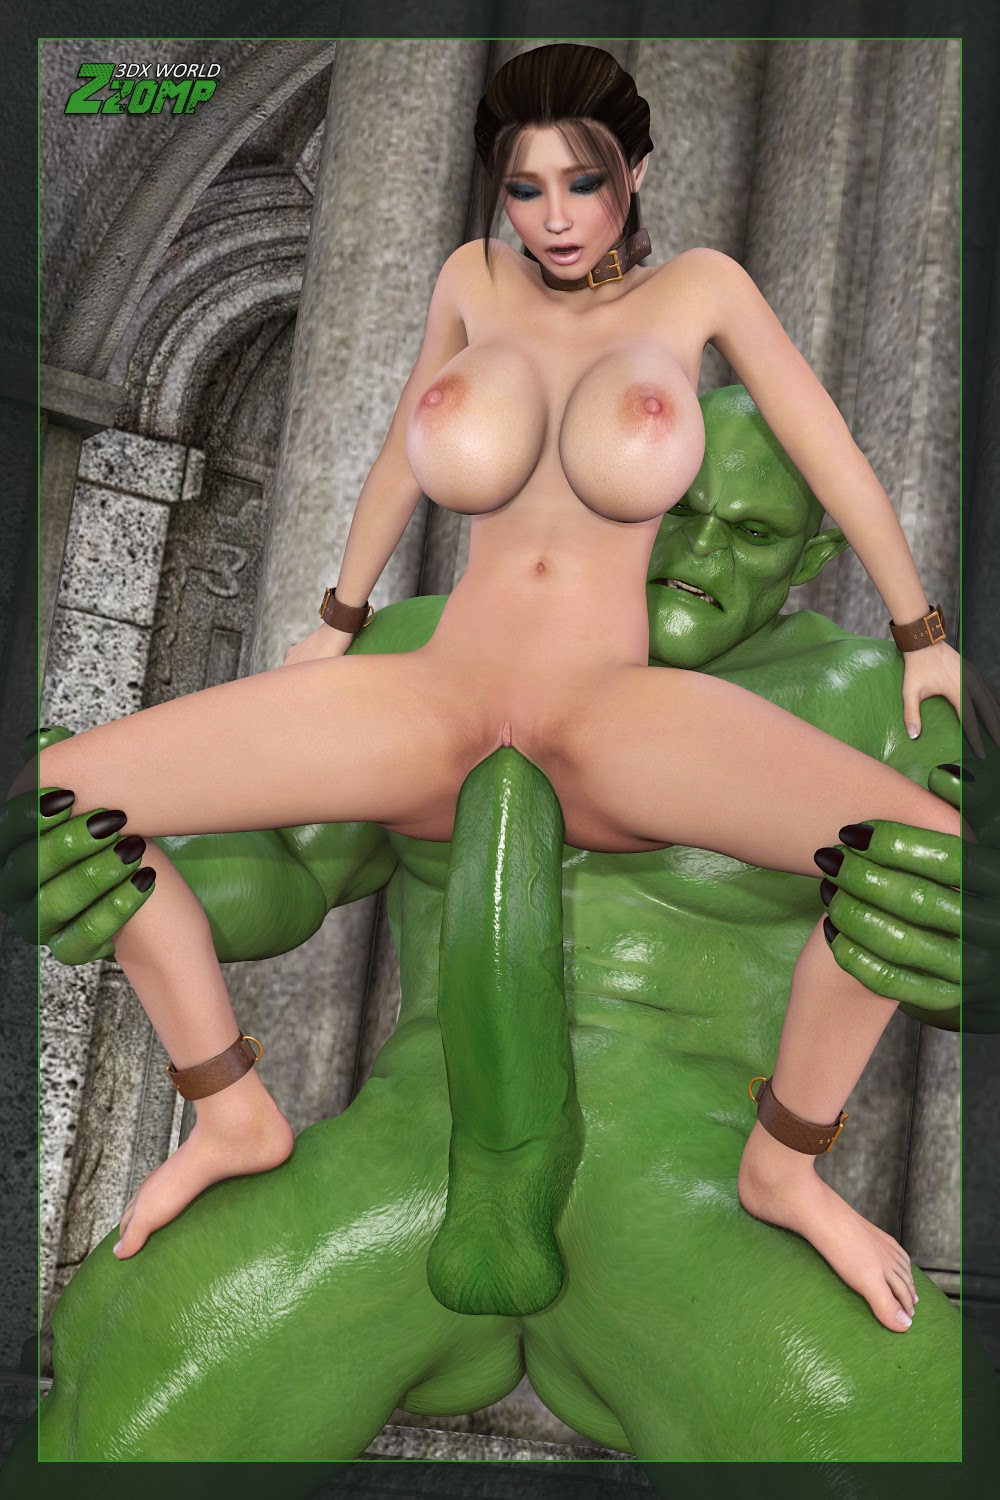 3d xxx world free image xxx boobs